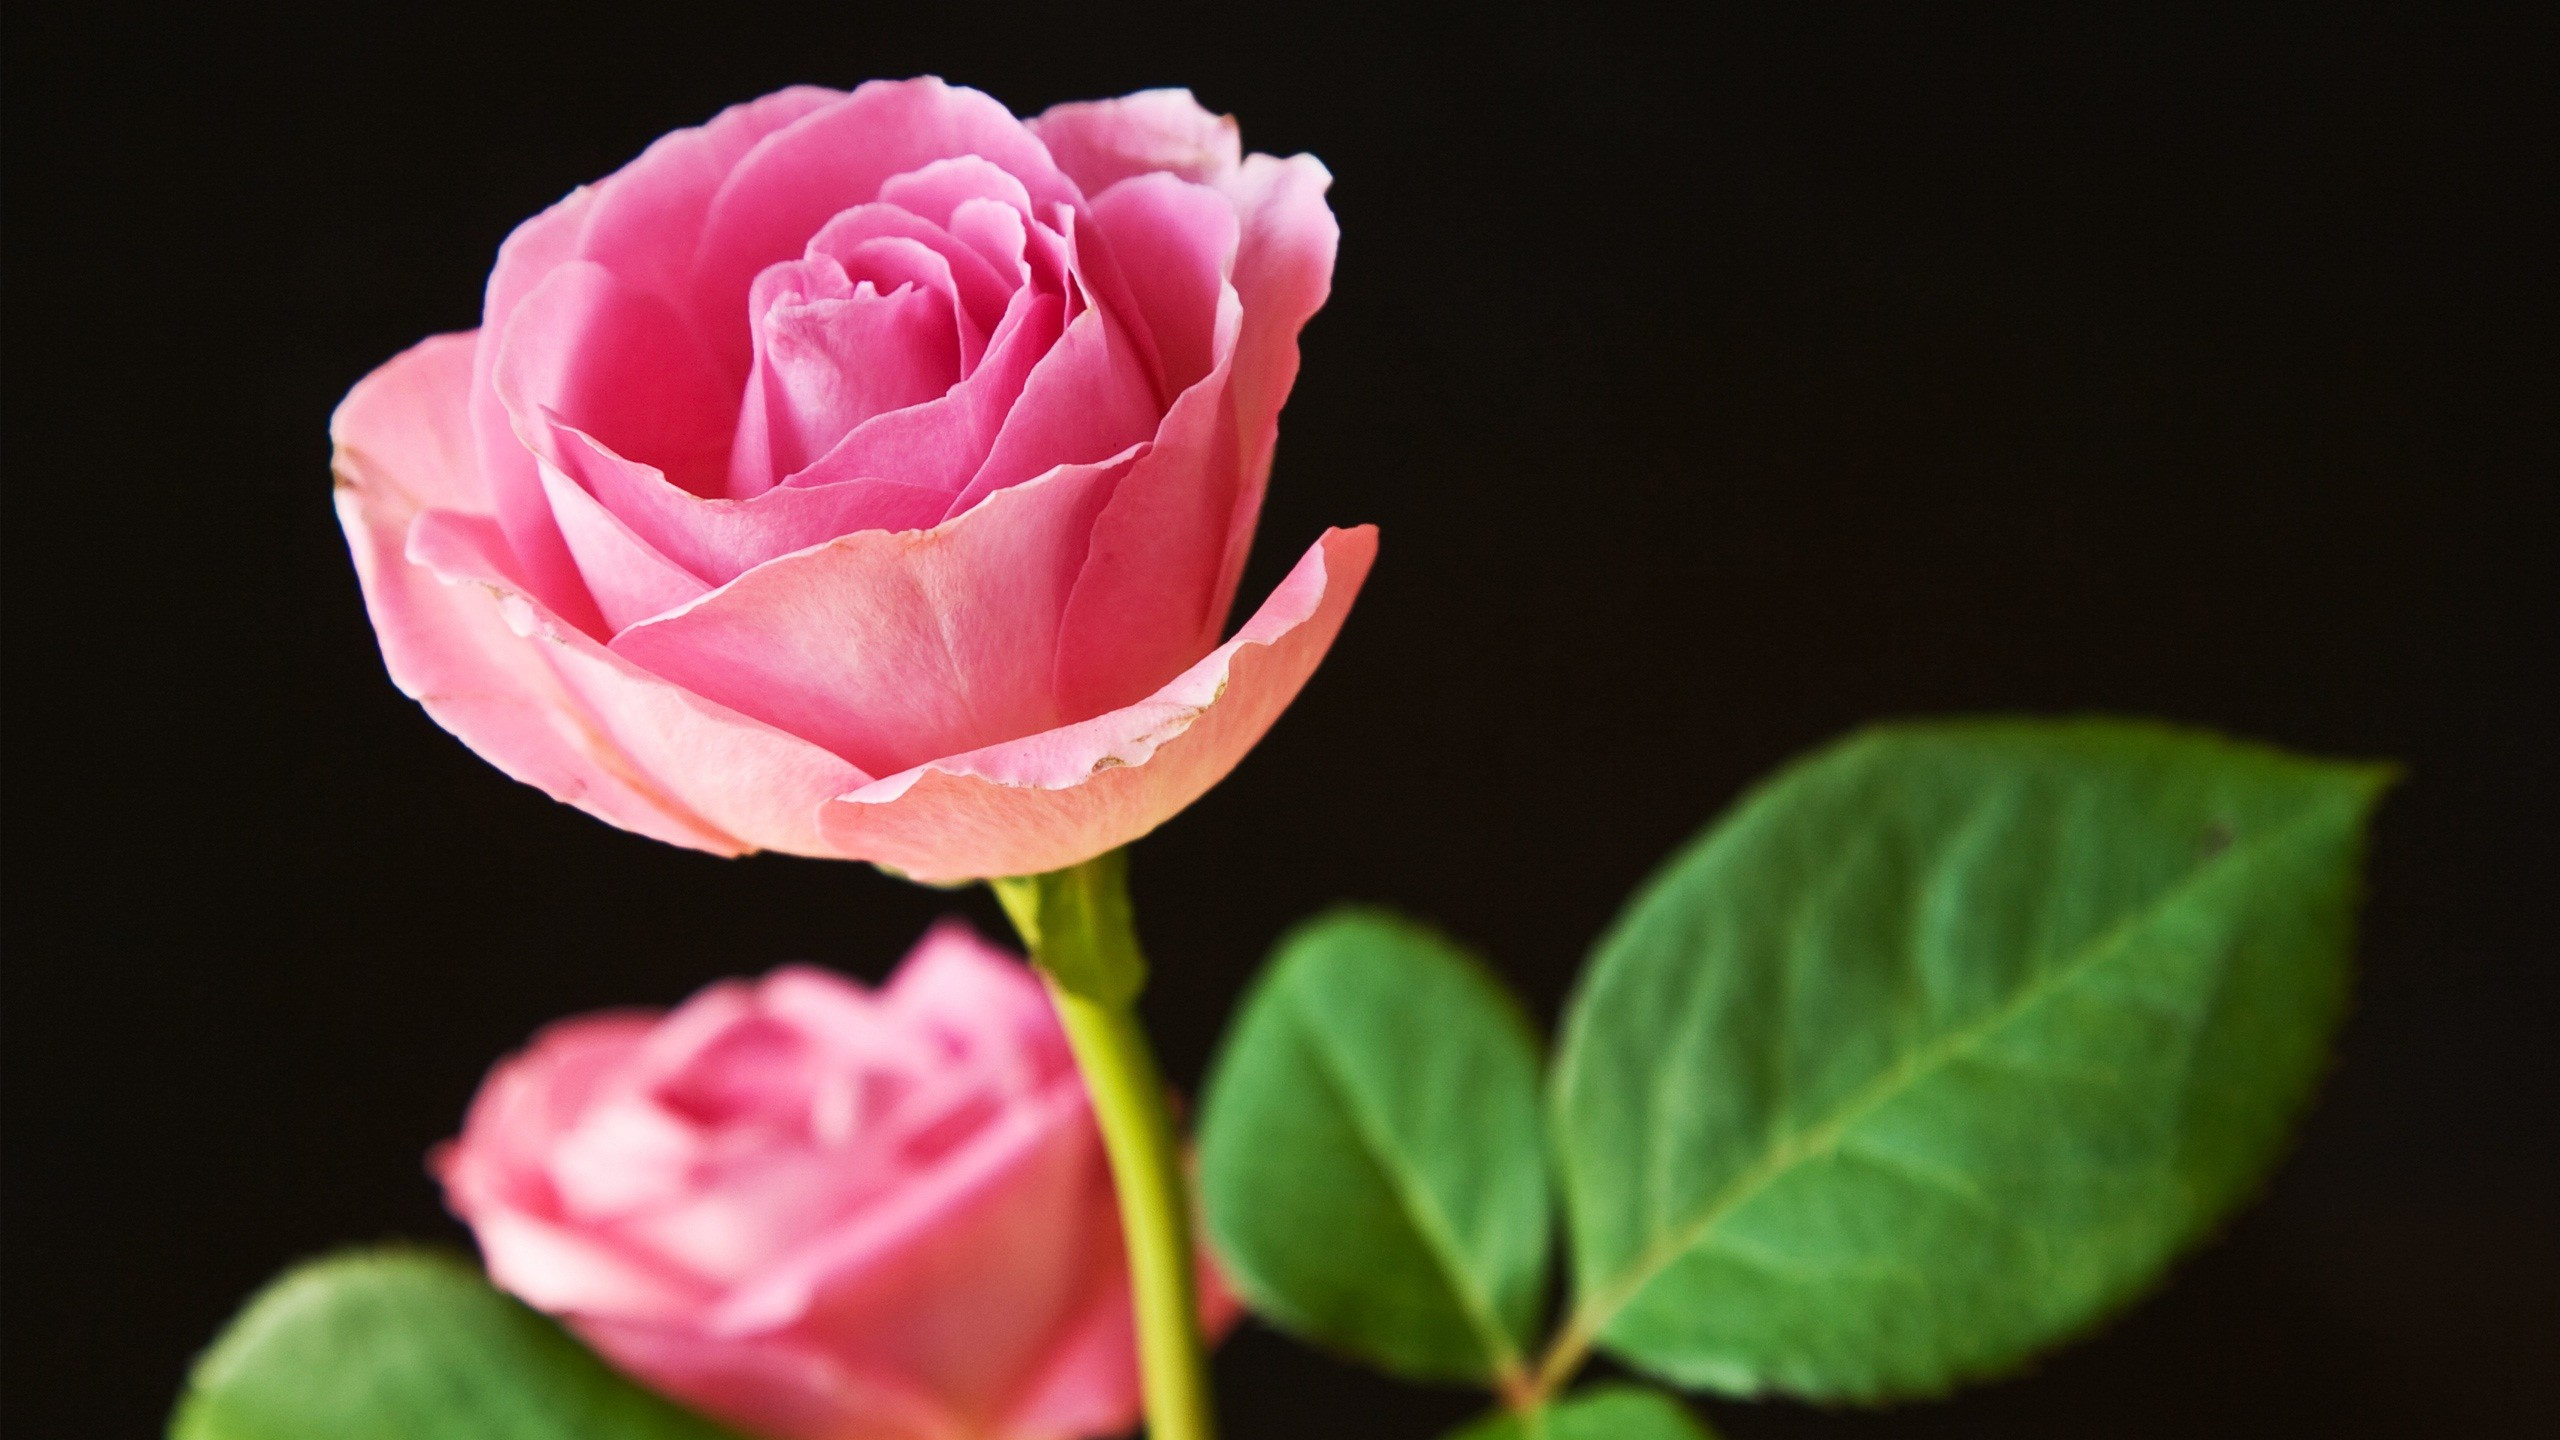 Res: 2560x1440, Tags: Pink Best Roses